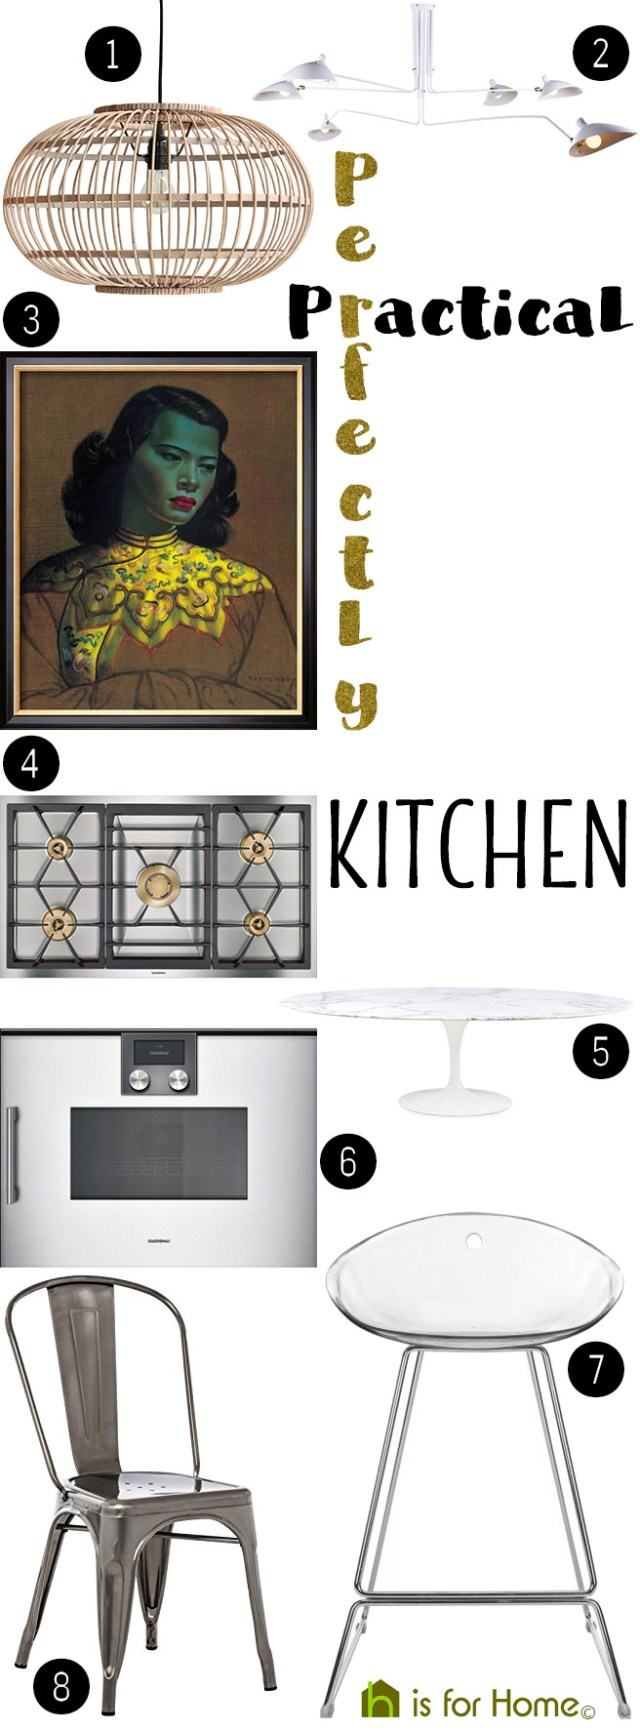 Get their look: Perfectly practical kitchen | H is for Home